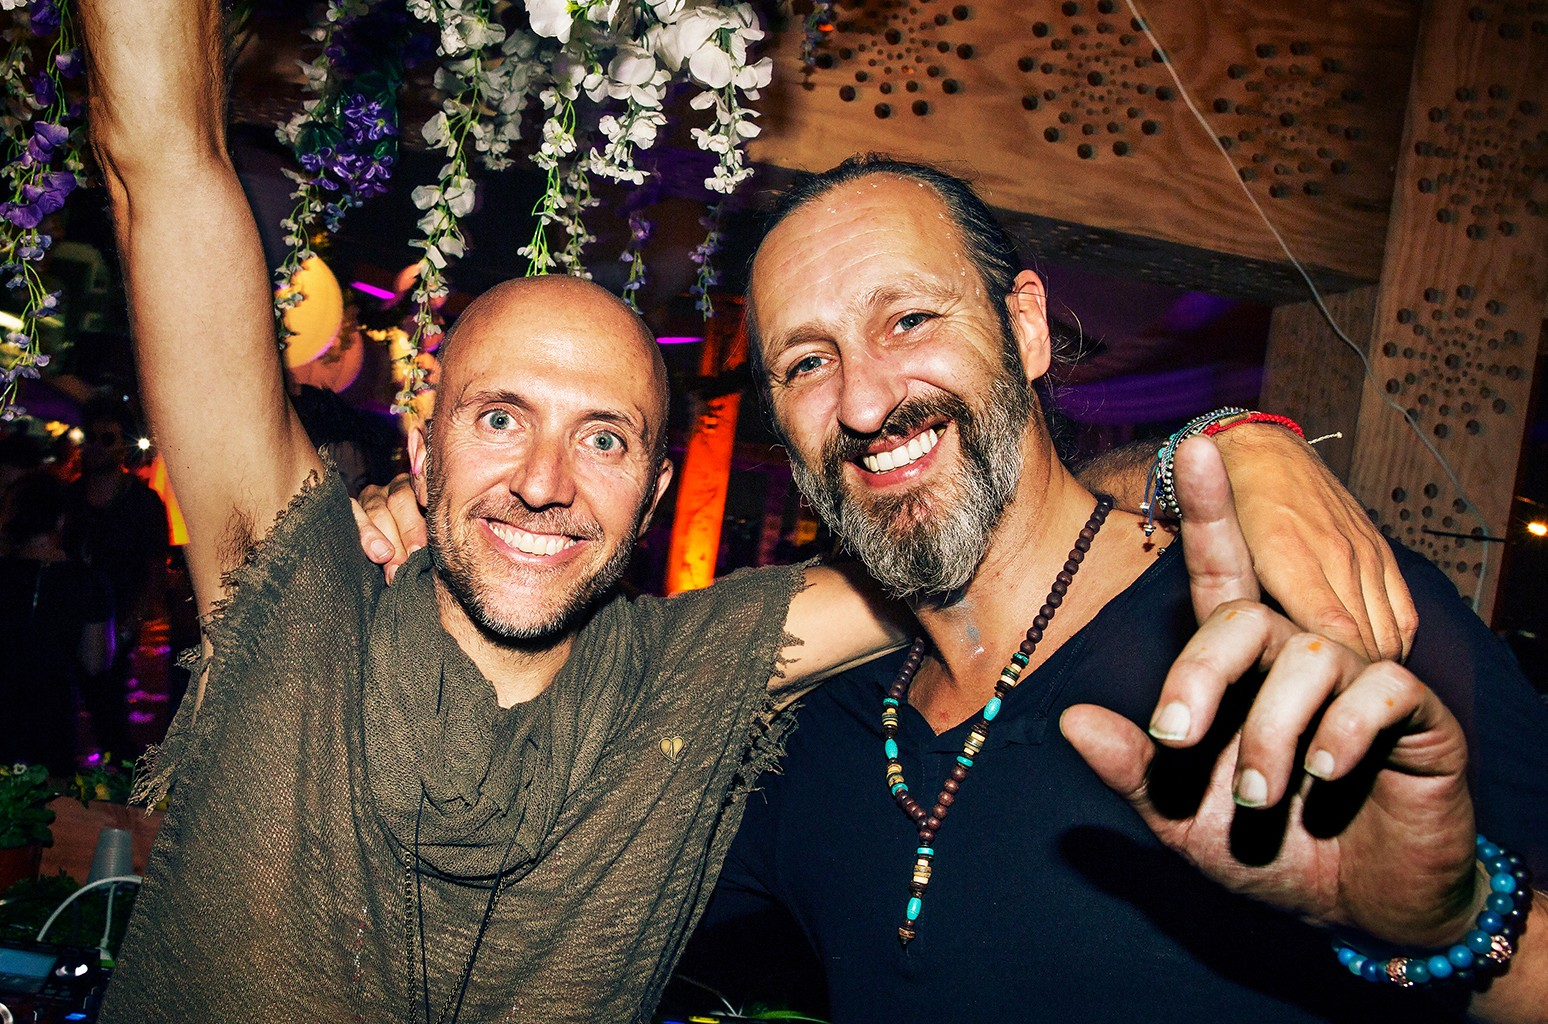 Lee Burridge and Lost Desert at All Day I Dream 2016.